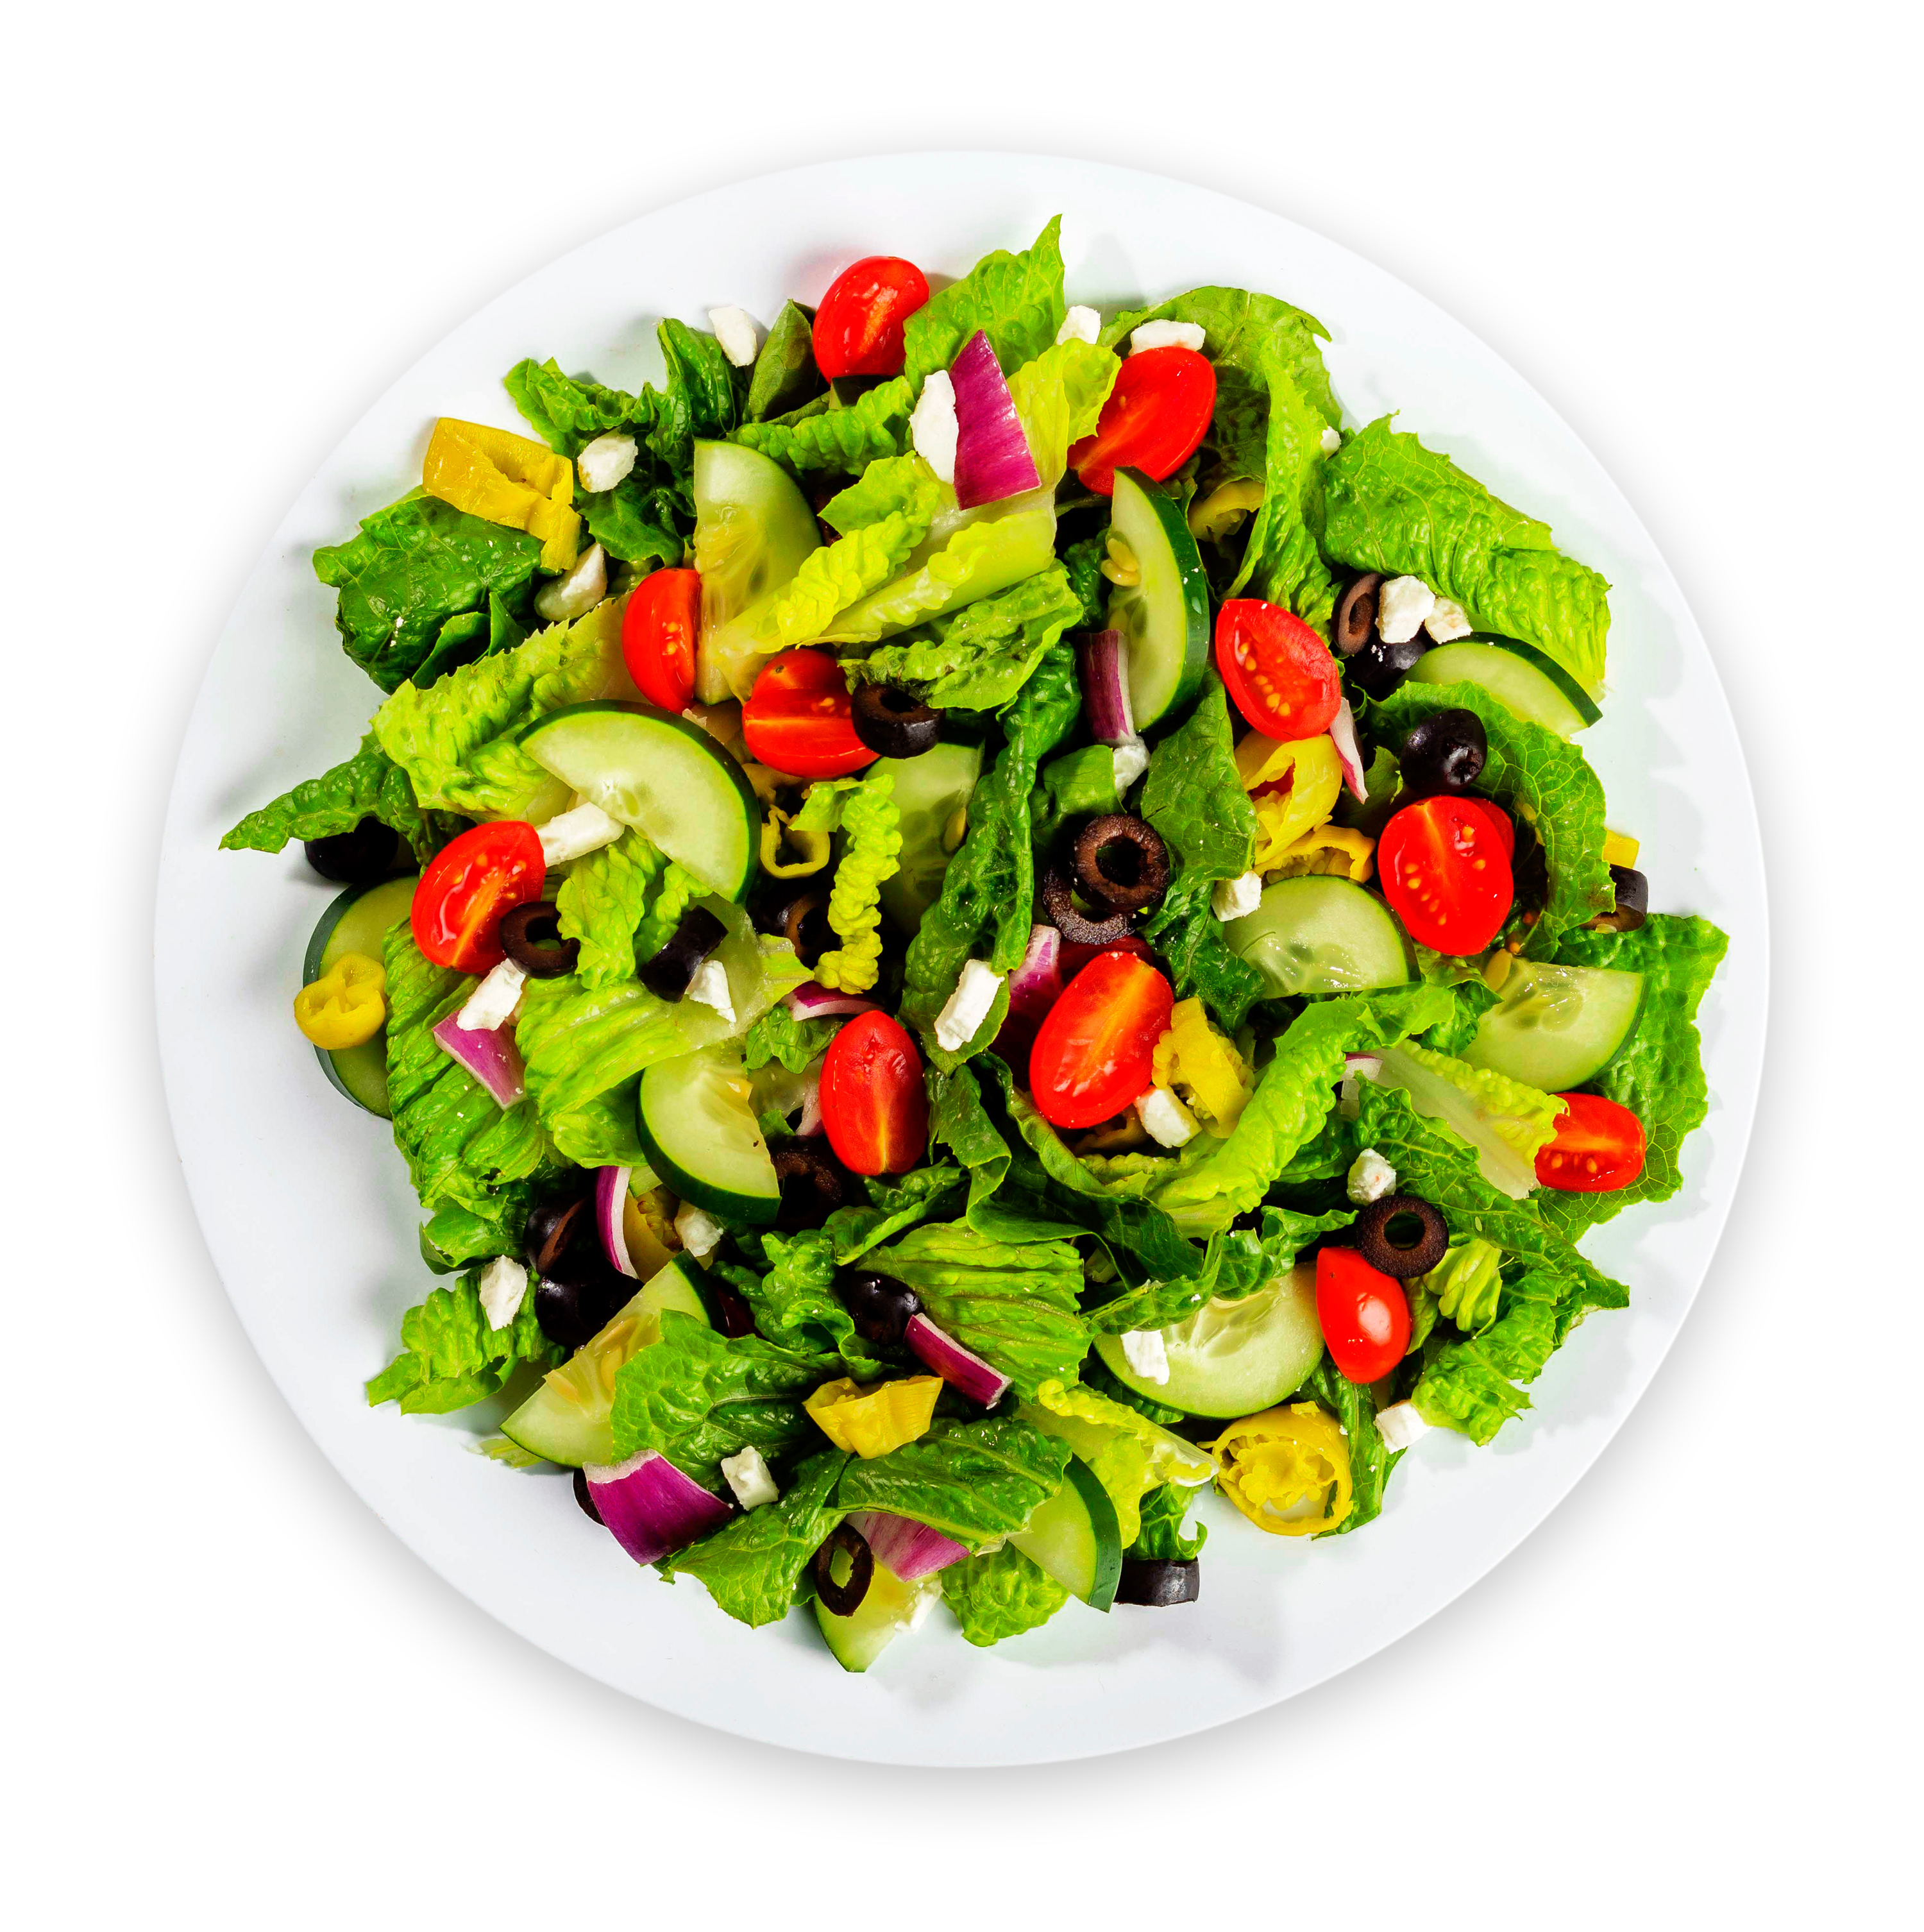 a colorful, healthy salad